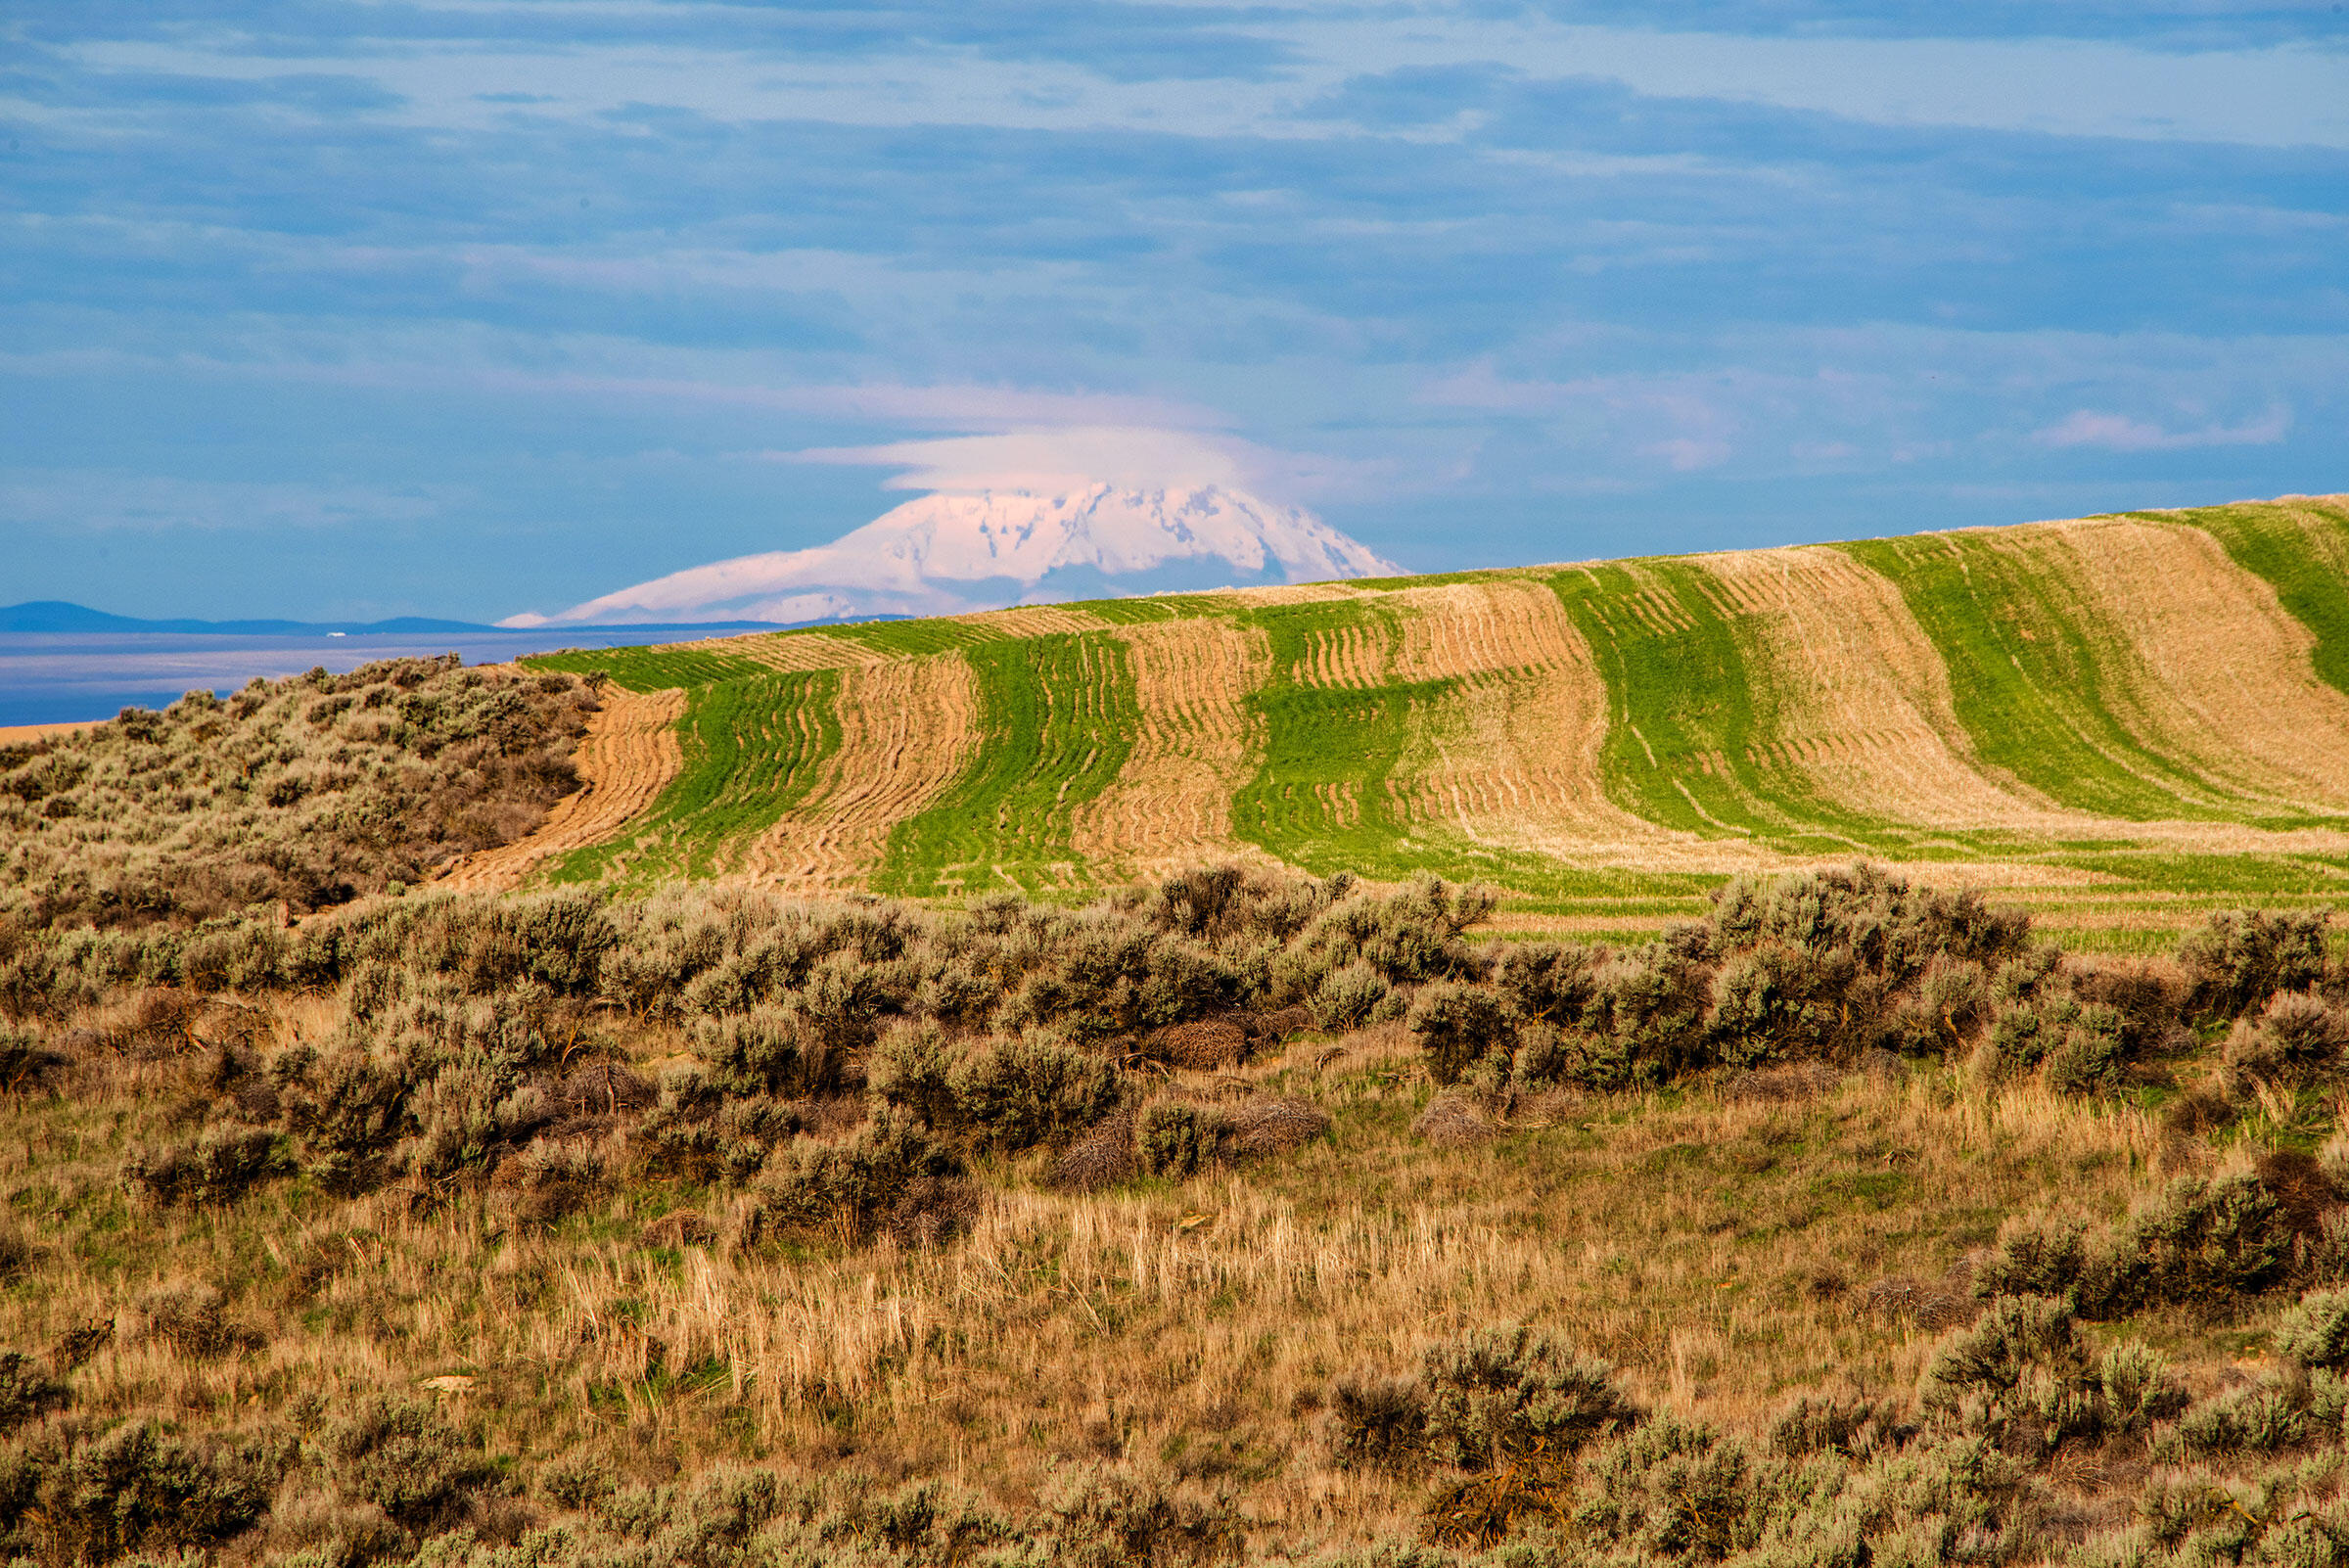 A small stand of sagebrush lines the wheat fields in front of Mount Adams. Row crop agriculture further fragments the once vast ecosystem. Dave Showalter